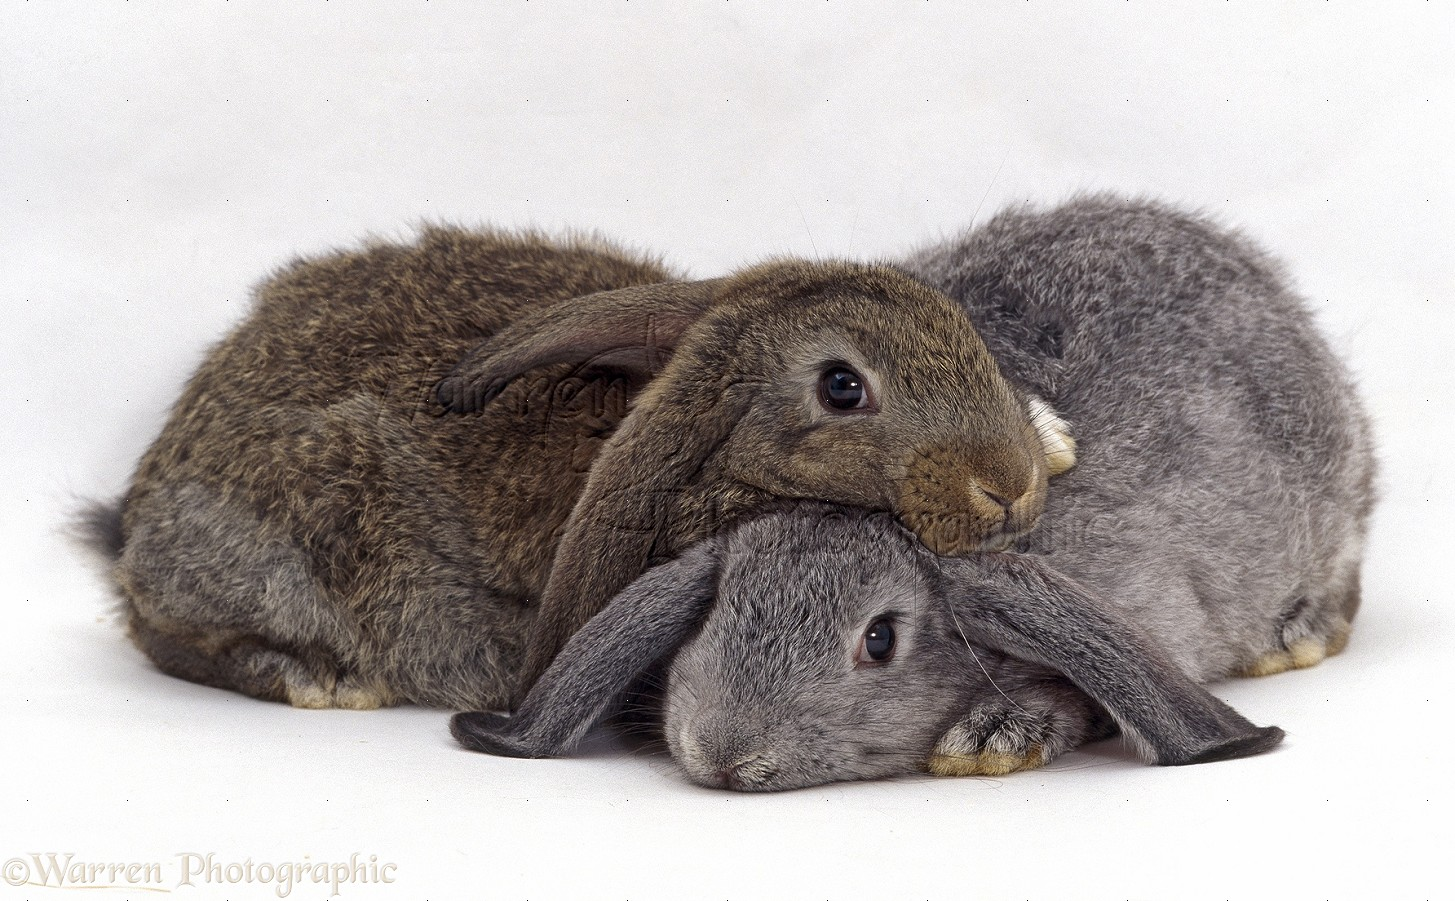 silver and agouti lop eared rabbits lying together photo rabbits verlag rabbits in australia